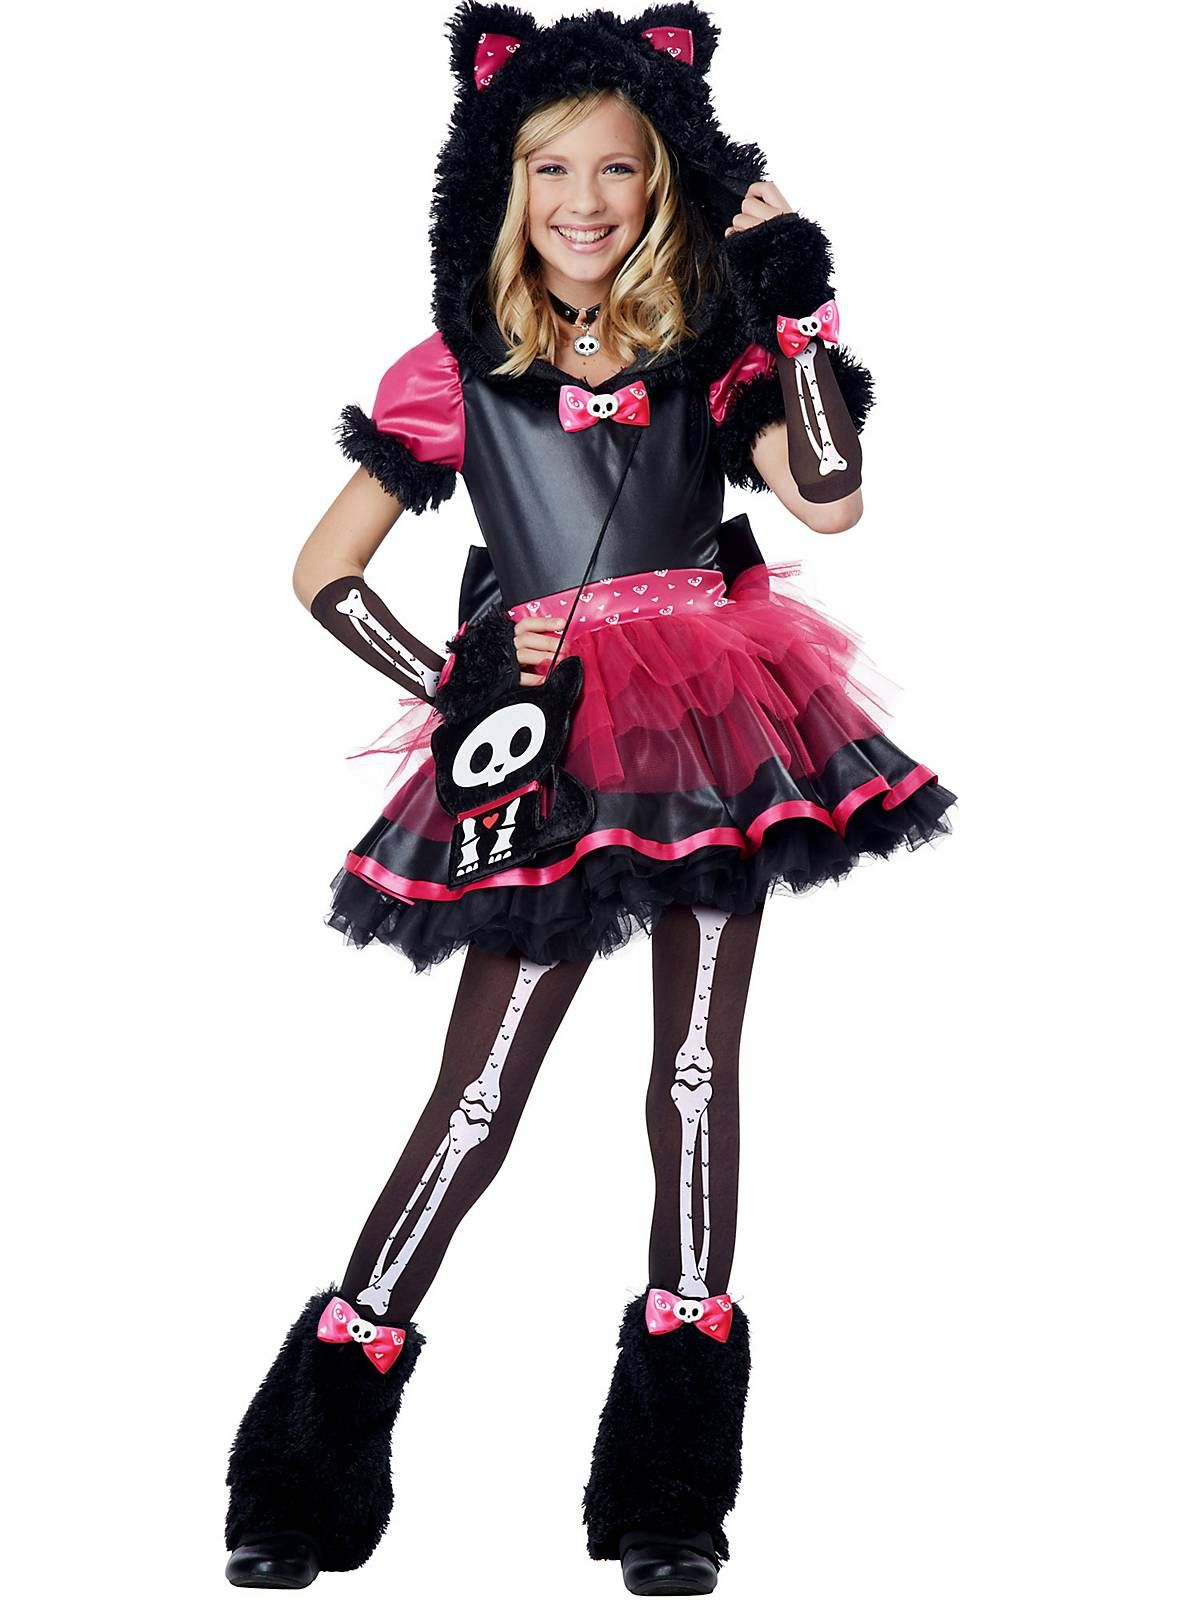 Gothic costumes for teens